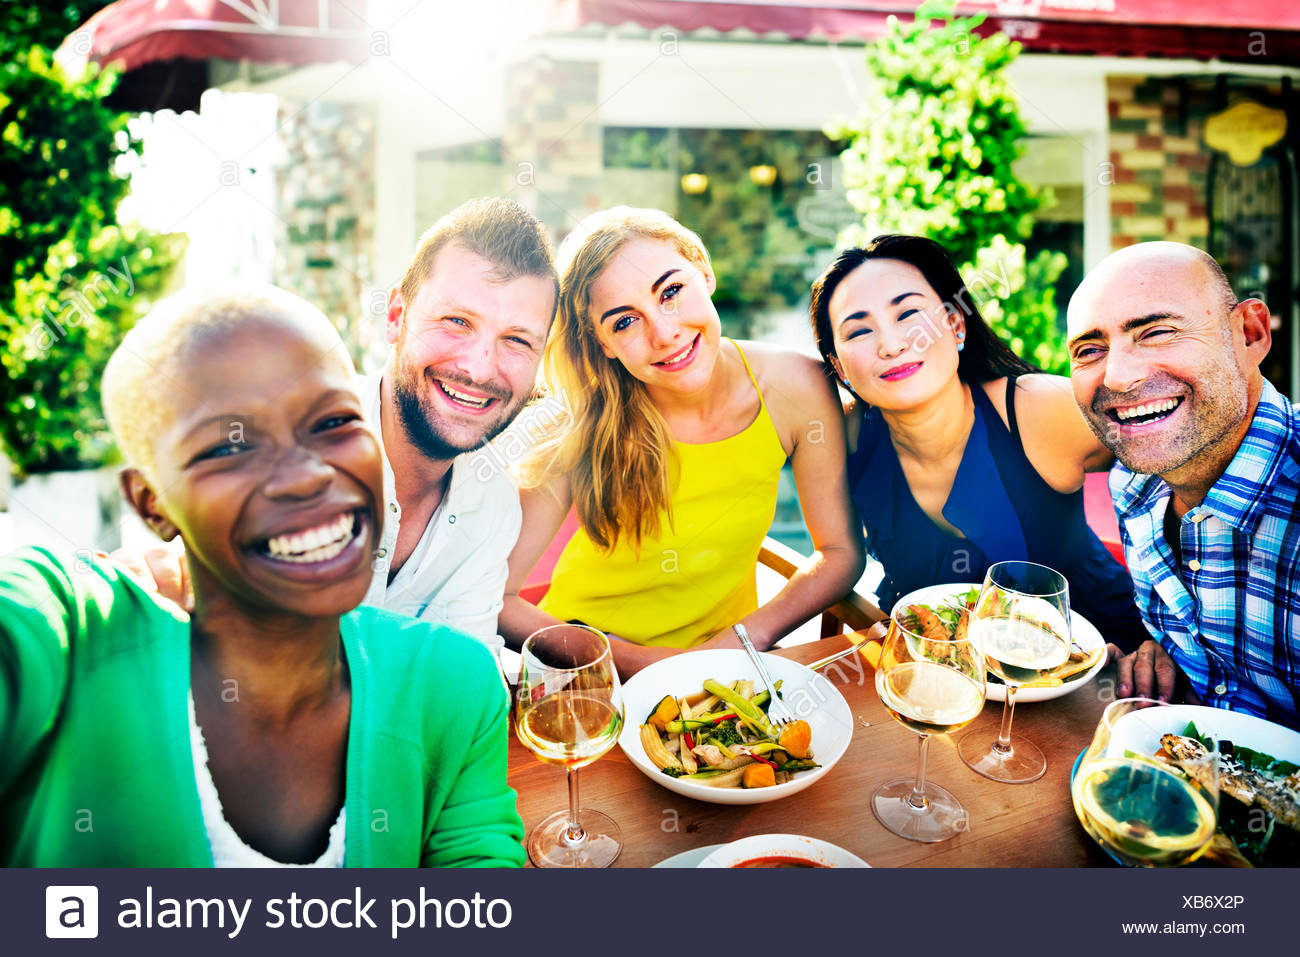 People Party Friendship Togetherness Happiness Concept - Stock Image